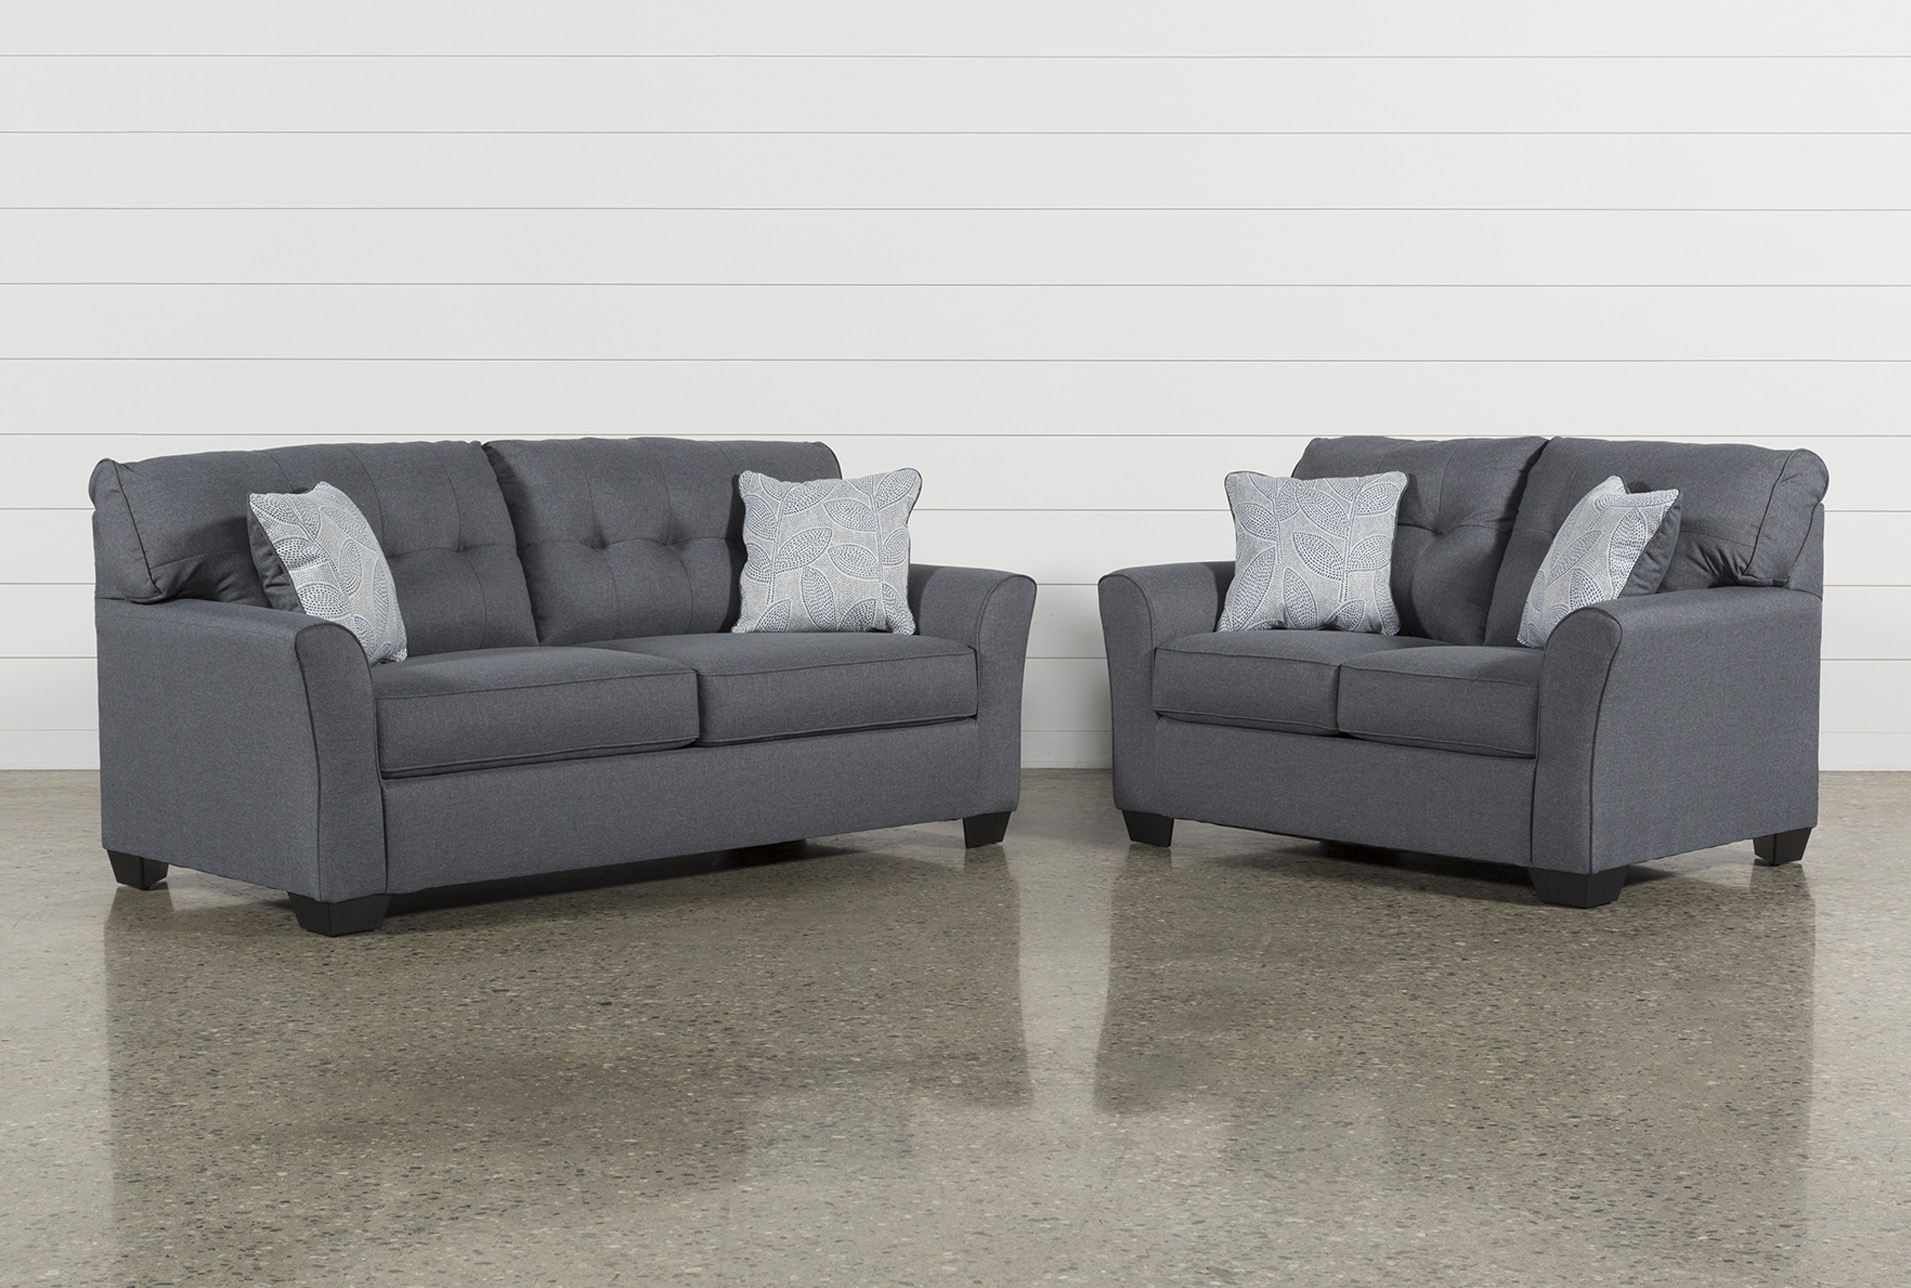 Jacoby Gunmetal 2 Piece Living Room Set (Qty: 1) Has Been Successfully  Added To Your Cart.